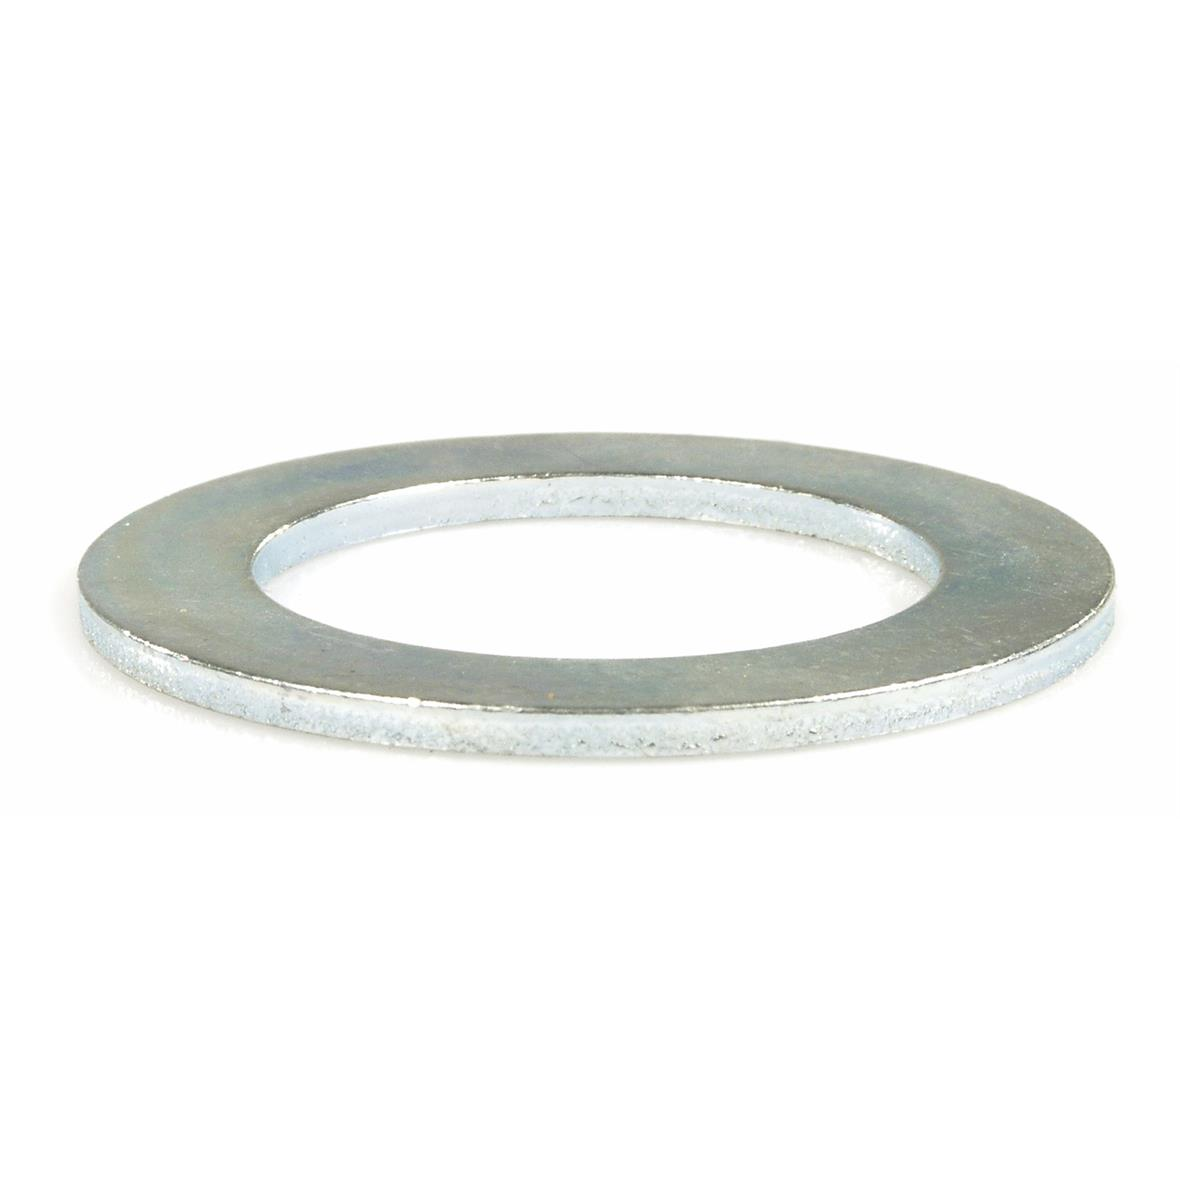 Product Image for 'Washer M10 mm Ø 10,5x20 mm (th) 1,5mmTitle'